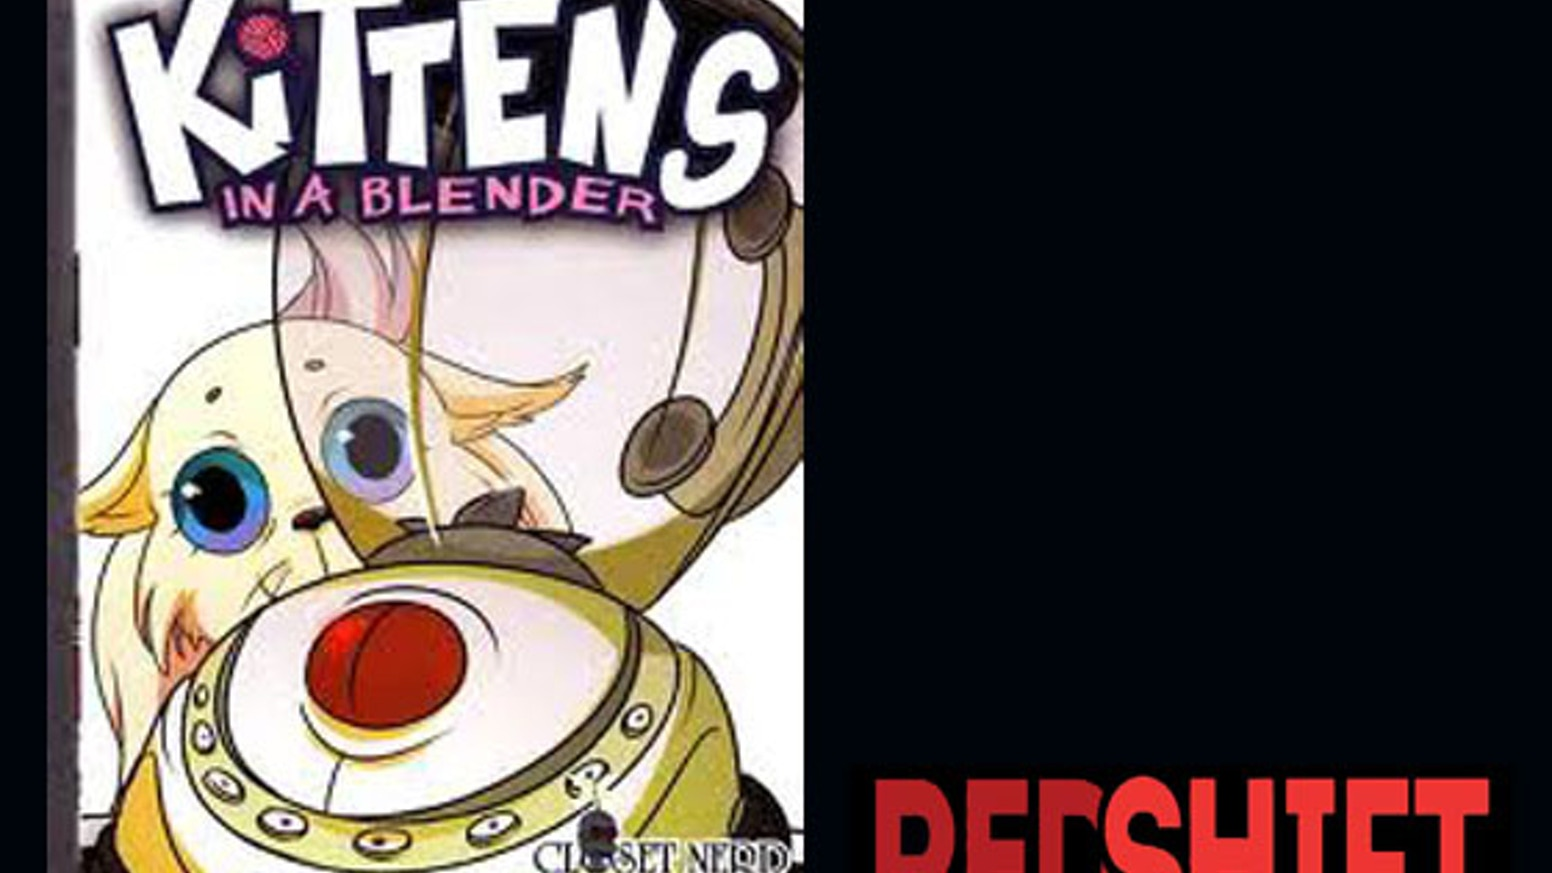 Kittens in a Blender: The Card Game by Redshift Games